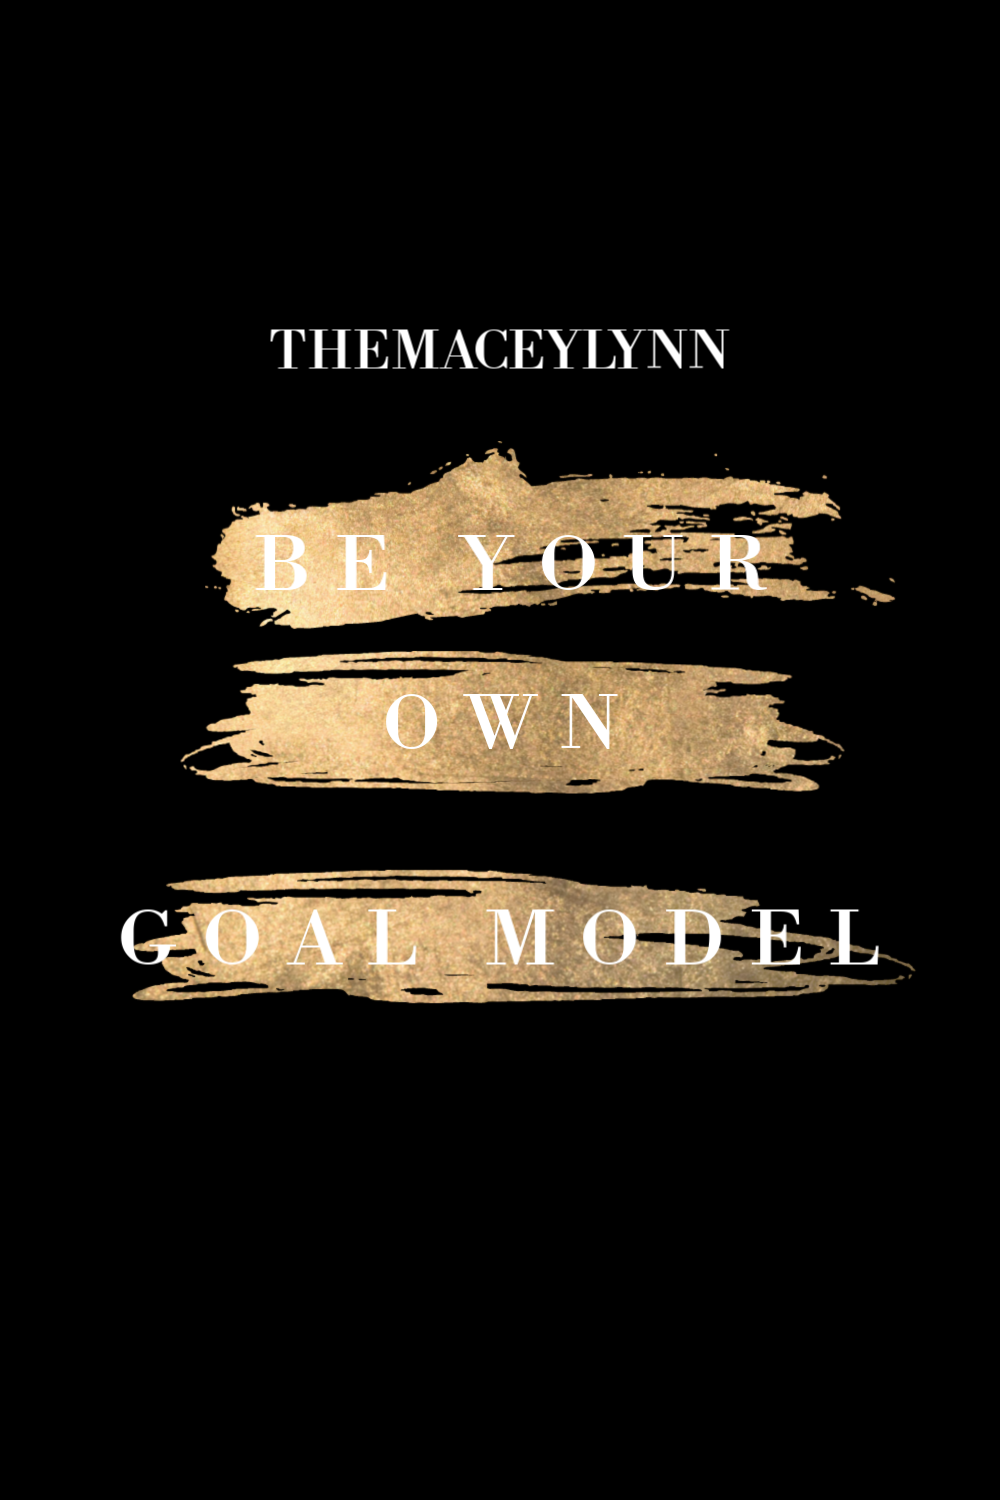 How To Be Your Own Goal Model | TheMaceyLynn